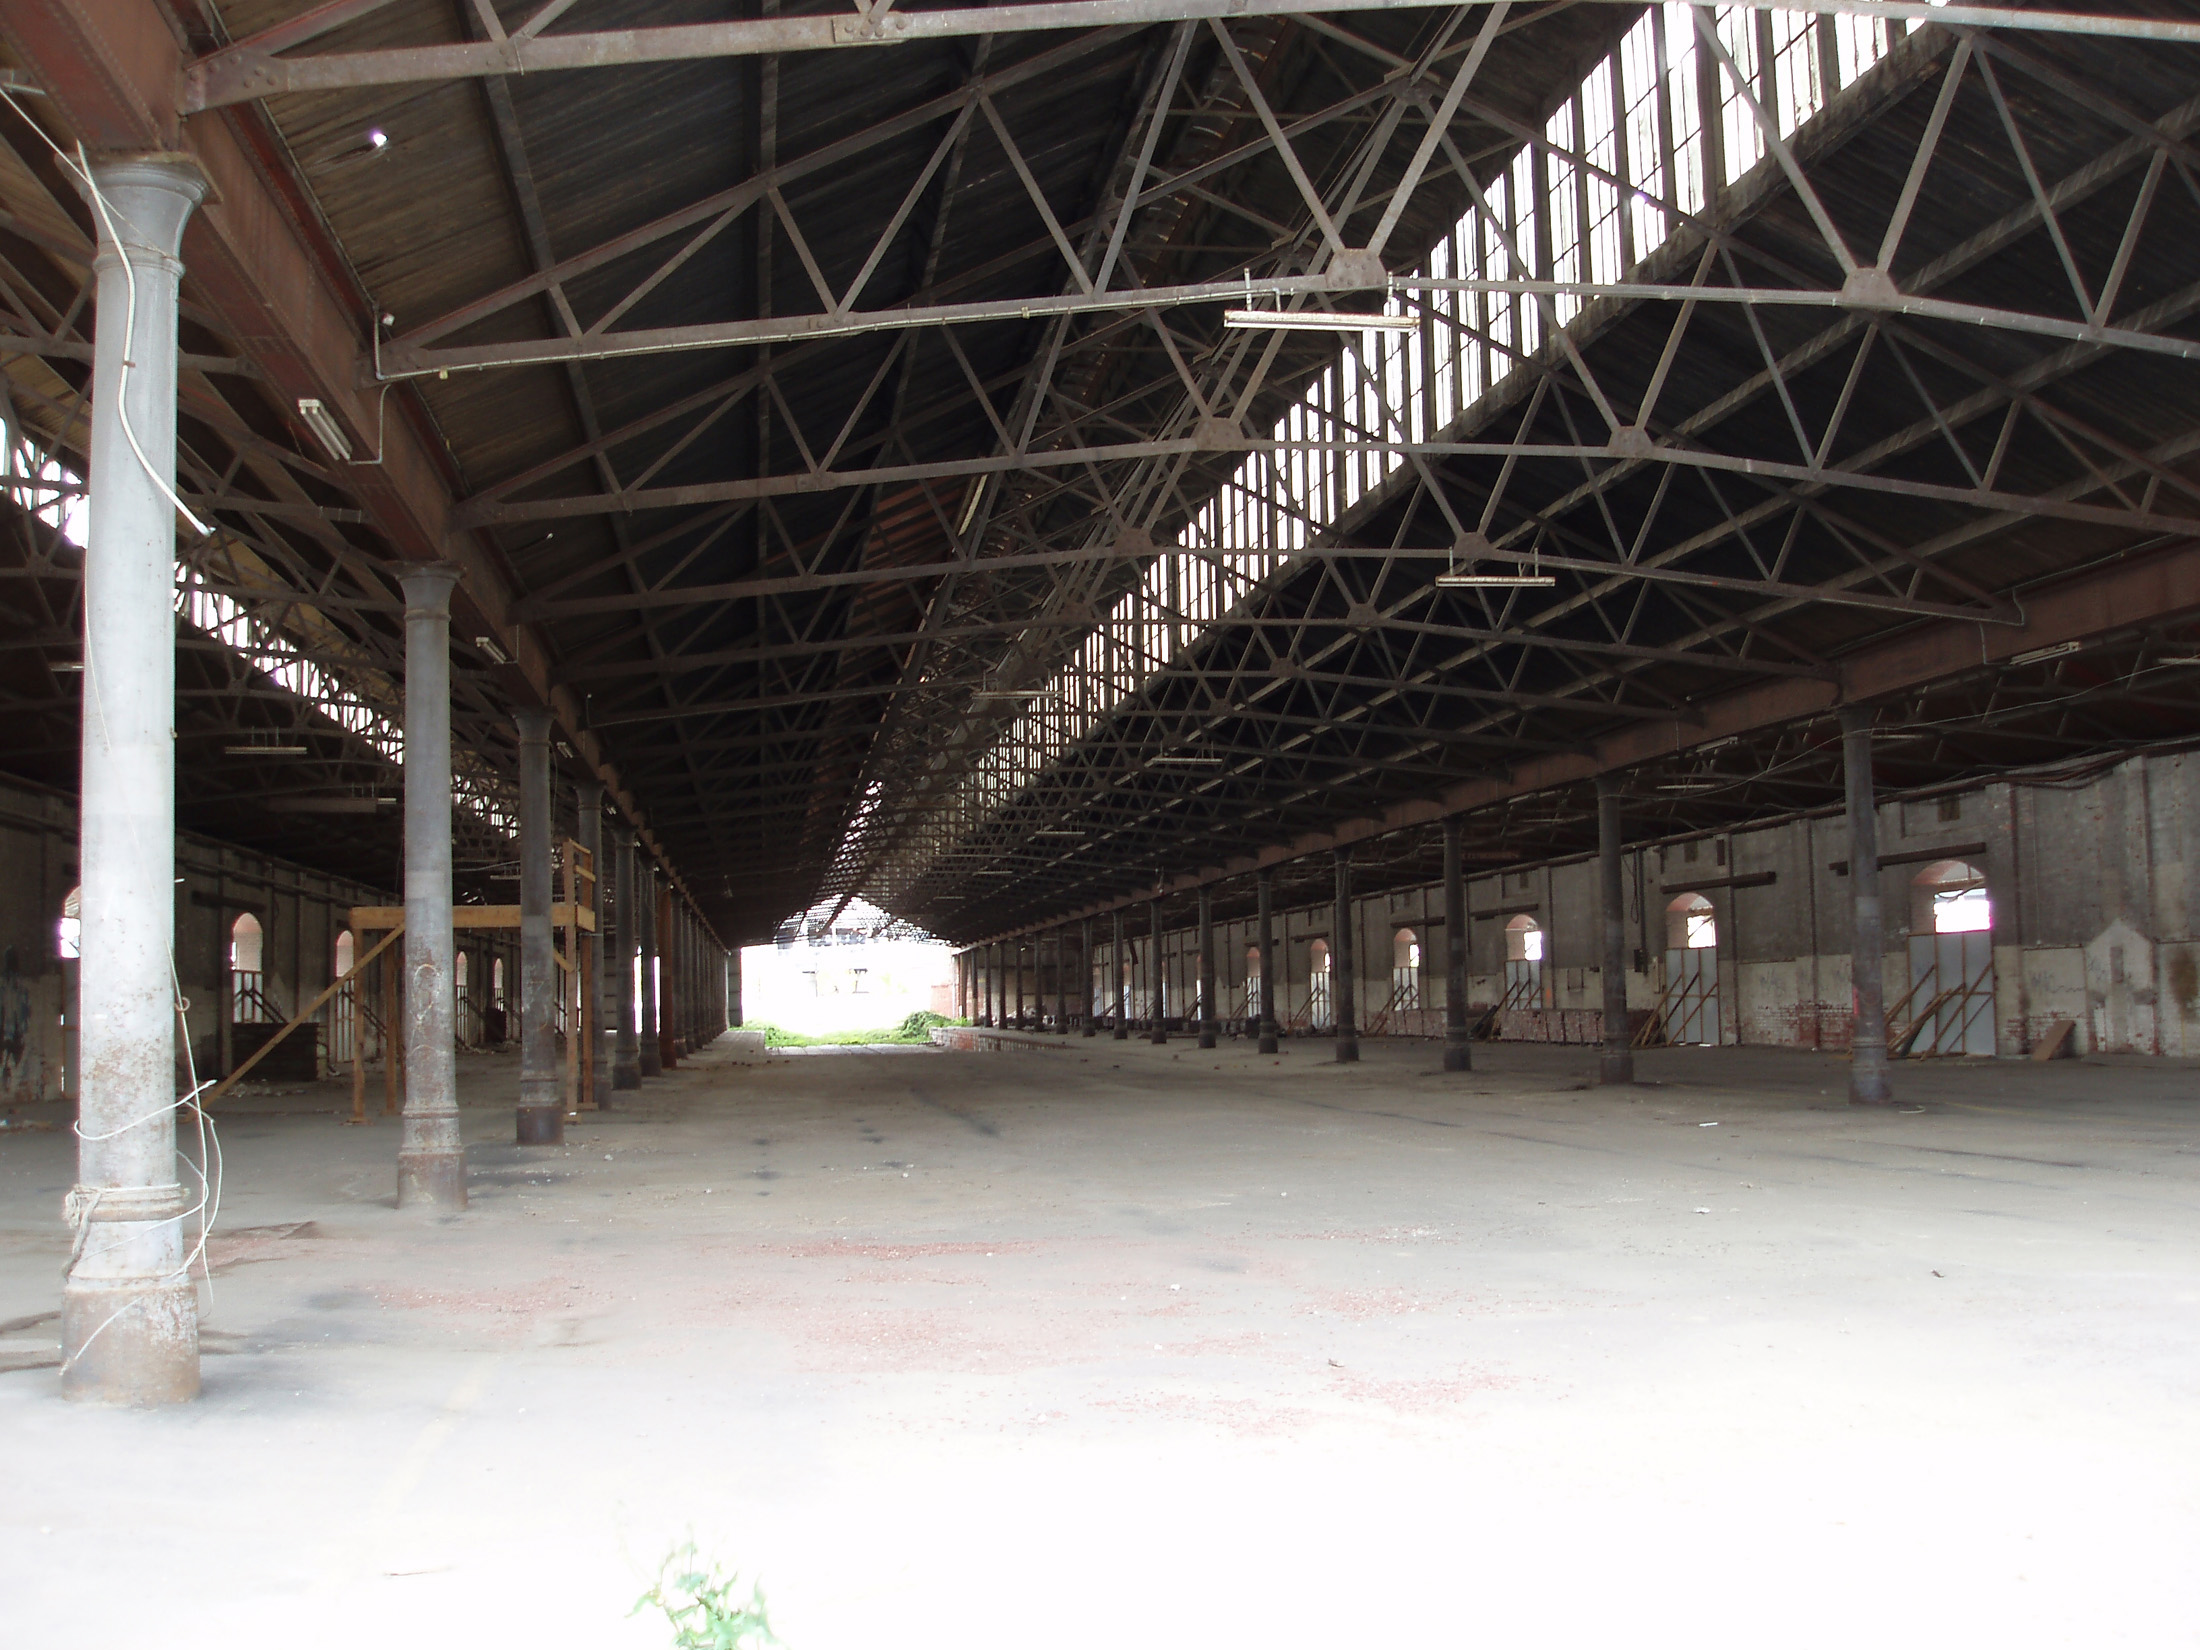 Interior of Abandoned Railway Shed, Southern Cross Station, Looking From One End to the Other, Melbourne, Australia